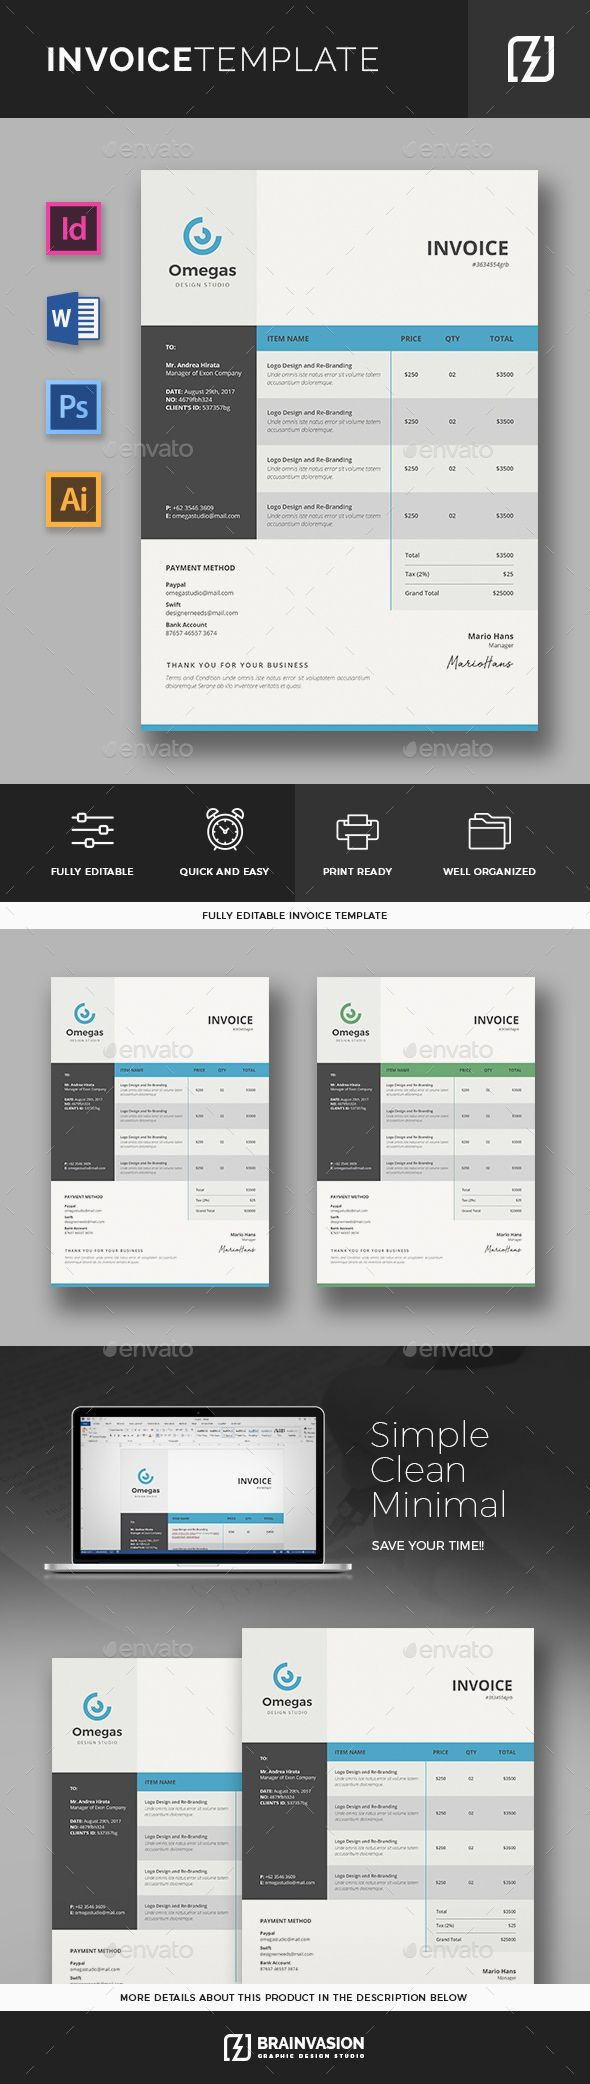 Invoice Template Template Ai Illustrator And Graphic Design - Invoice template illustrator